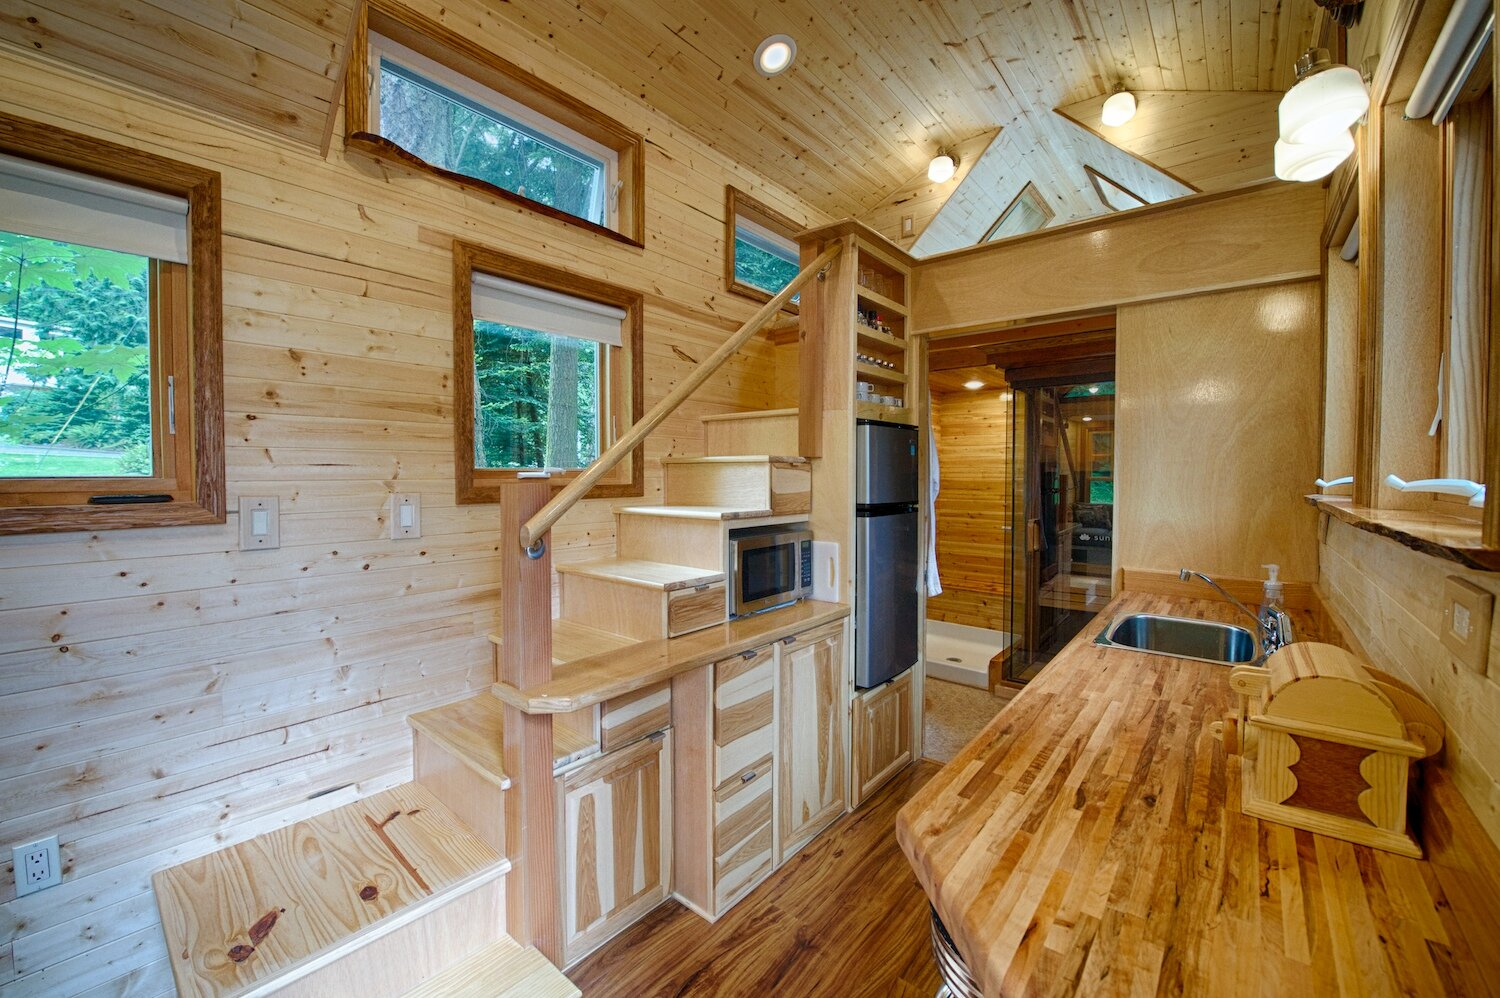 tiny house kerry alexander hope island cottages washington staircase humble homes - Tiny House Stairs 2